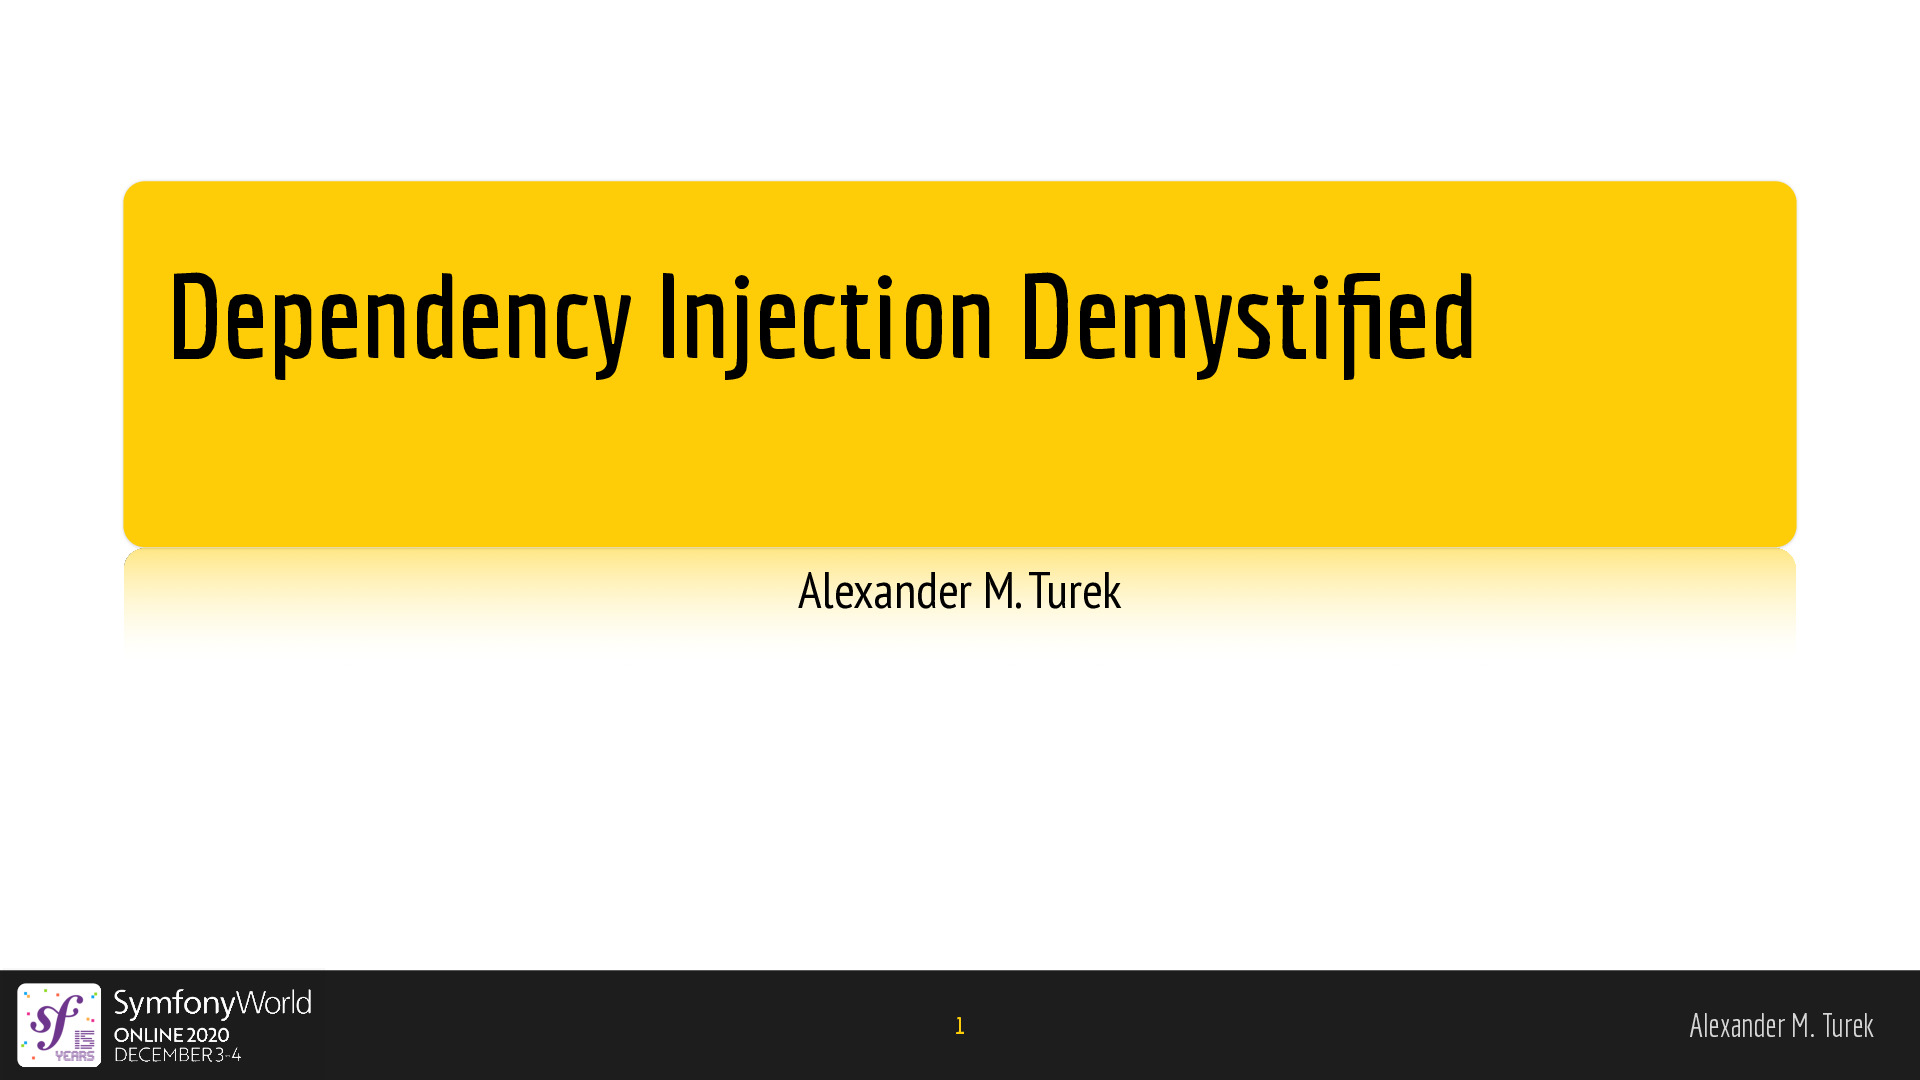 Dependency Injection Demystified